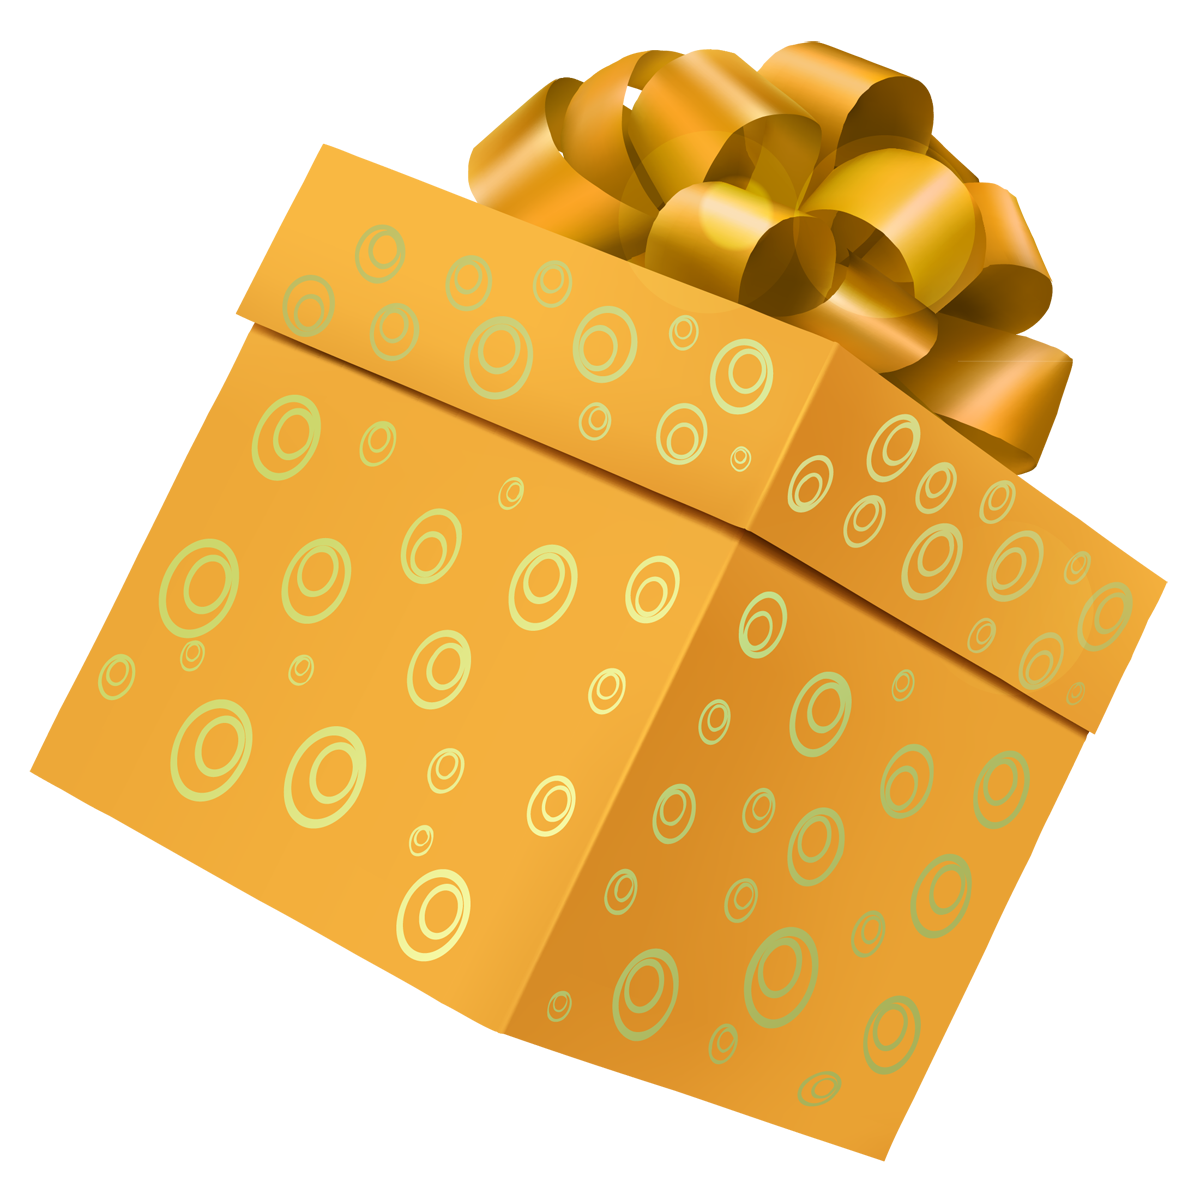 Box png image gifts. Gift clipart stacked present